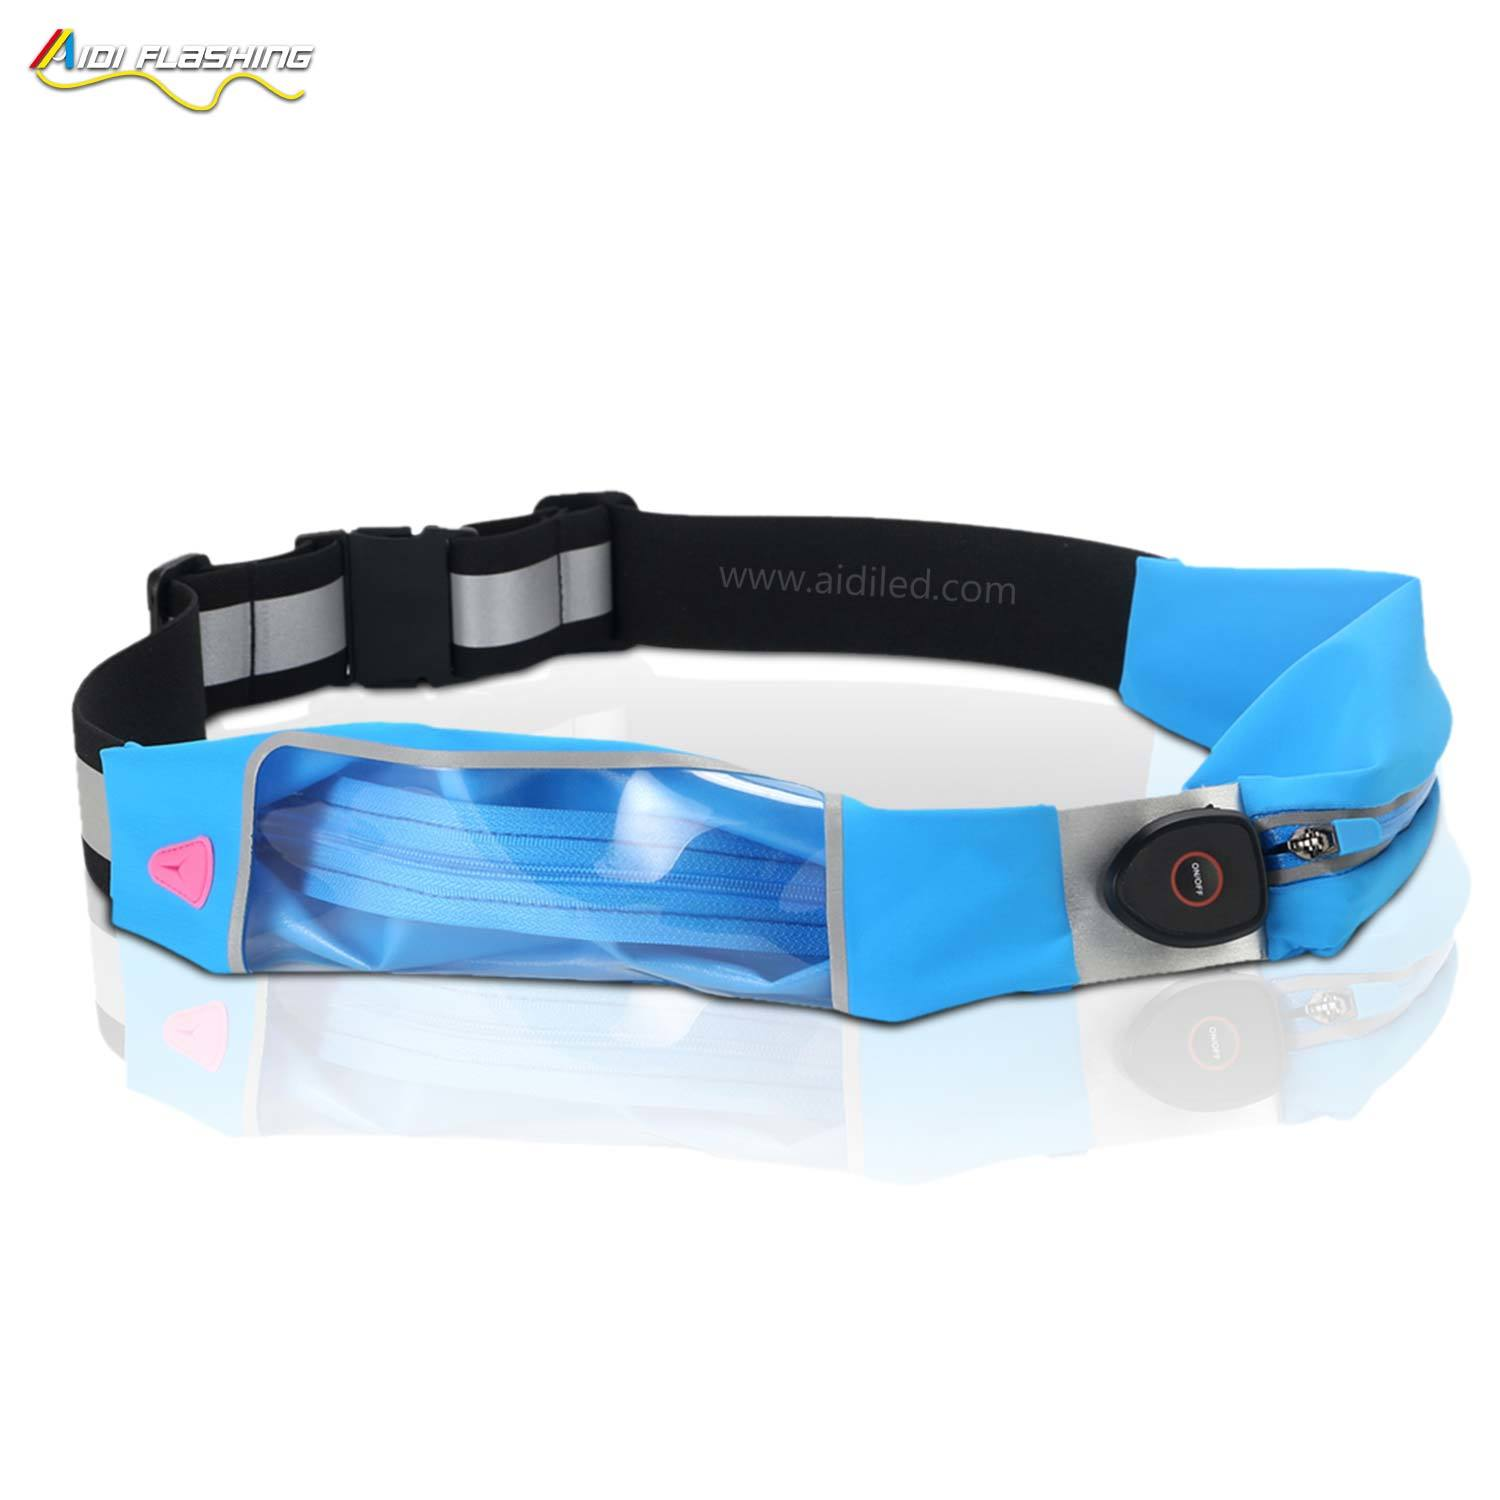 Led outdoor sport waist bag running bum bag AIDI-S16